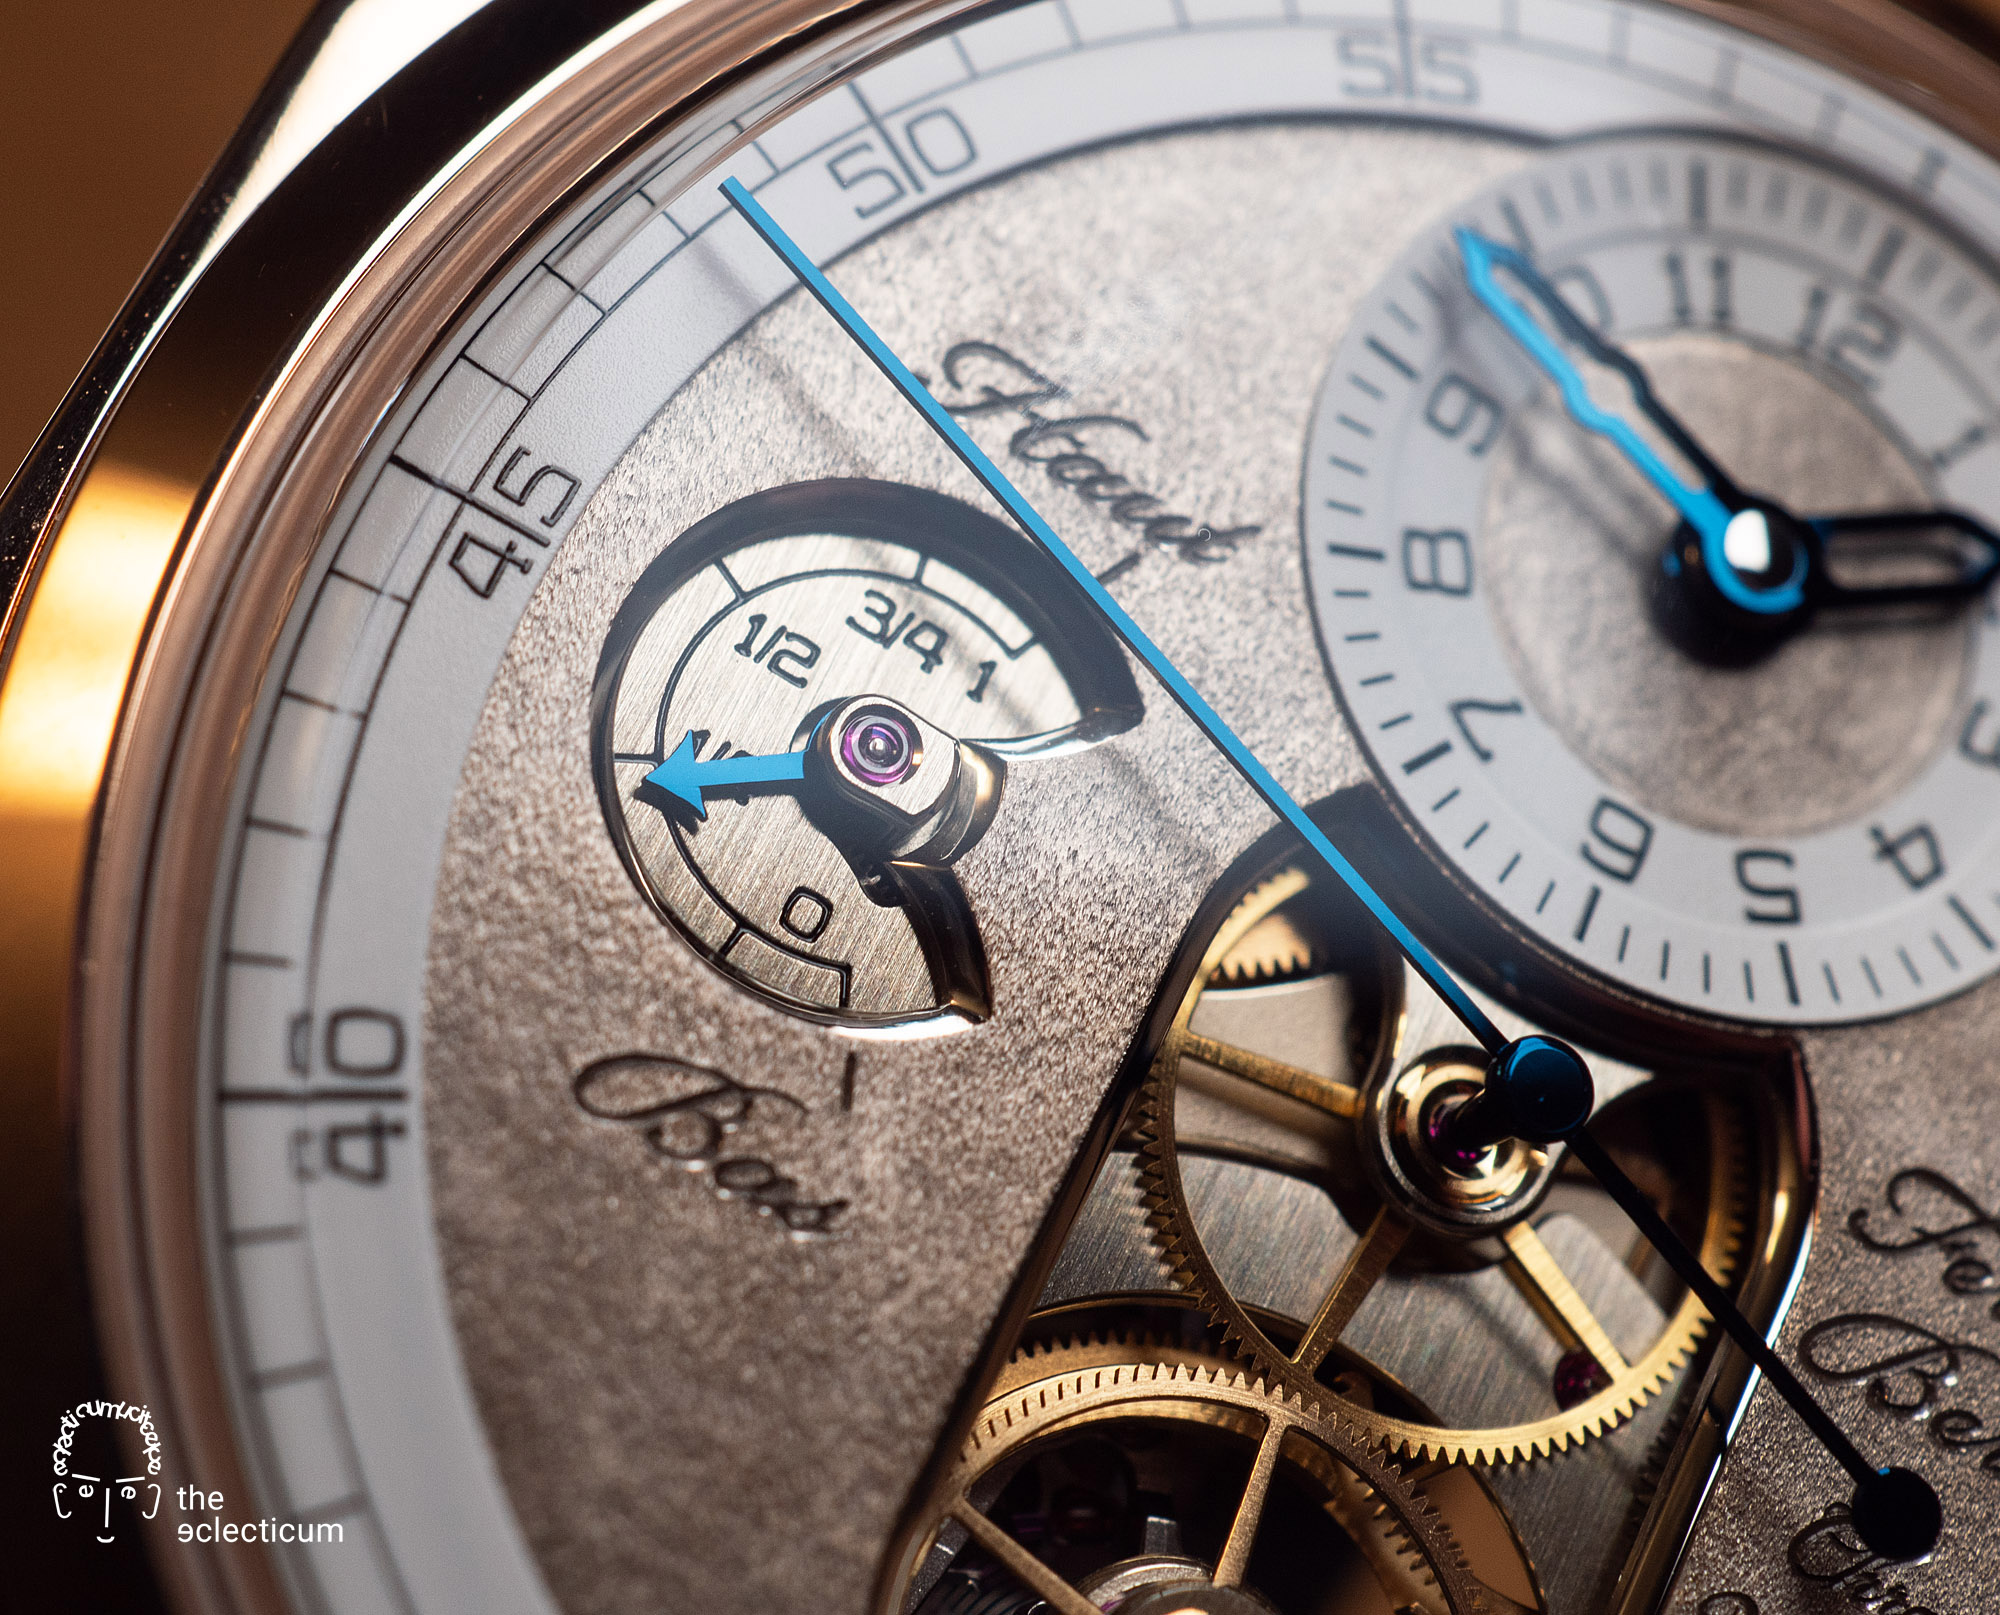 Ferdinand Berthoud Chronometry FB 1 œuvre oeuvre d'or chronometer dial heatblued steel hands power reserve